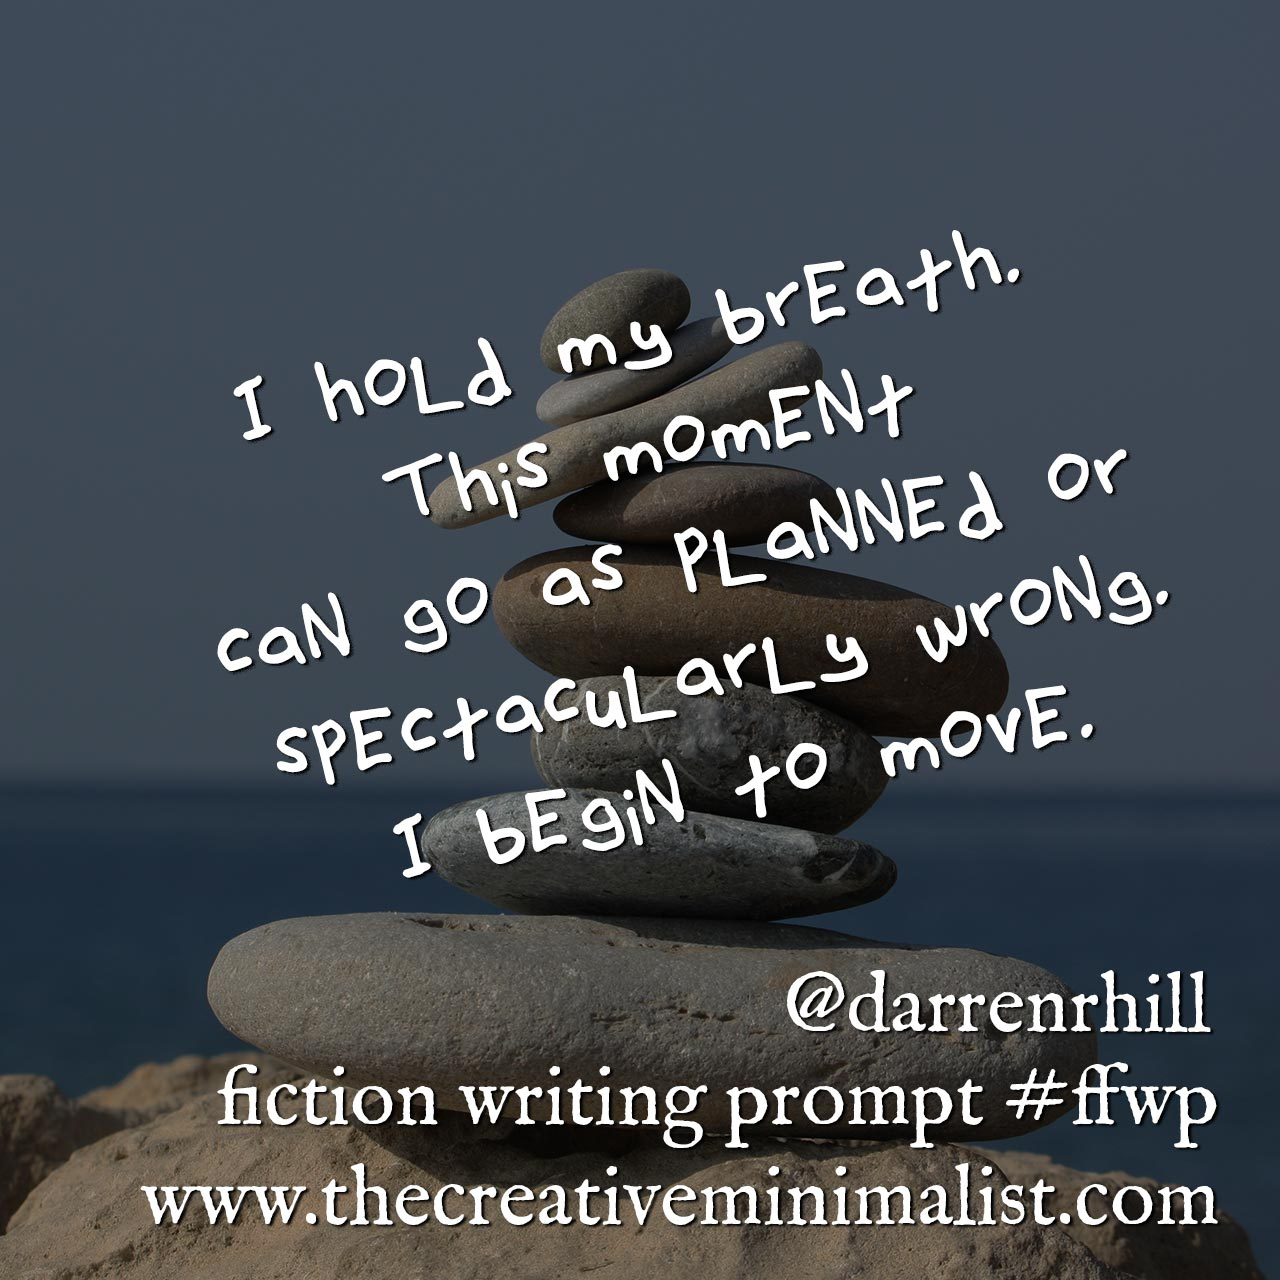 I hold my breath. This moment can go as planned or spectacularly wrong. I begin to move. Friday Fiction Writing Prompt